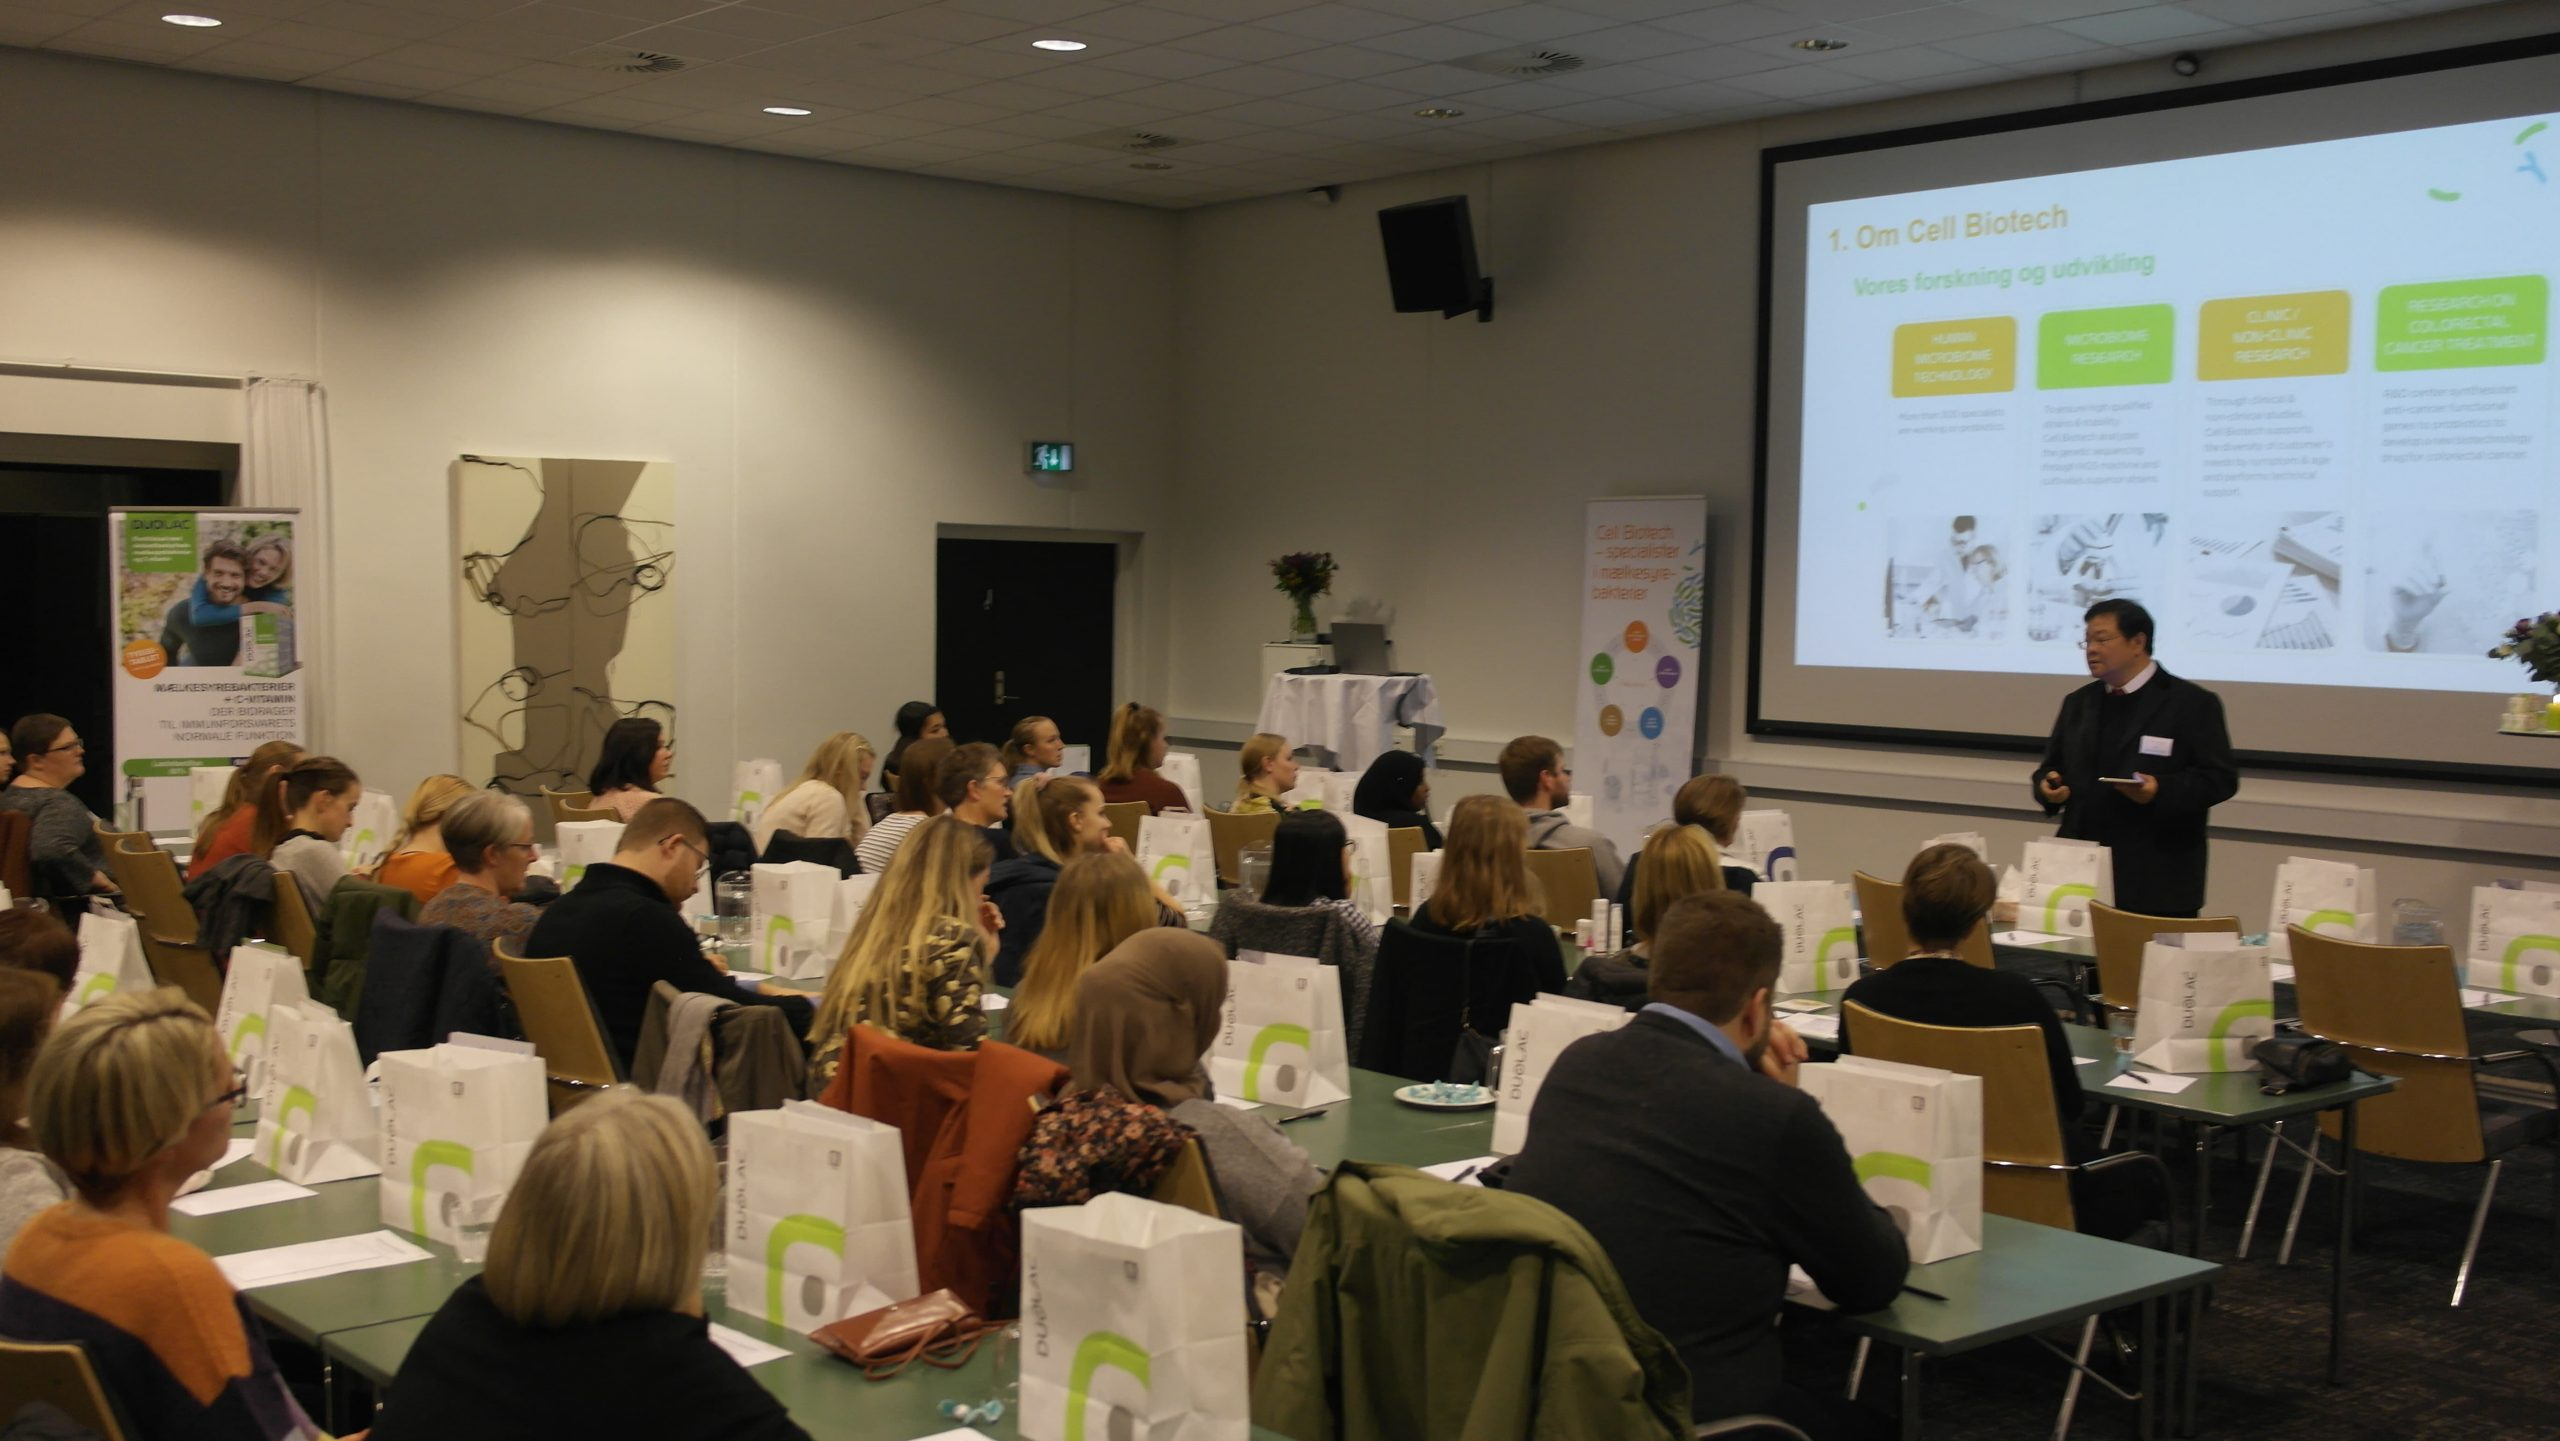 Duolac Denmark holds danish pharmacist seminar in different regions